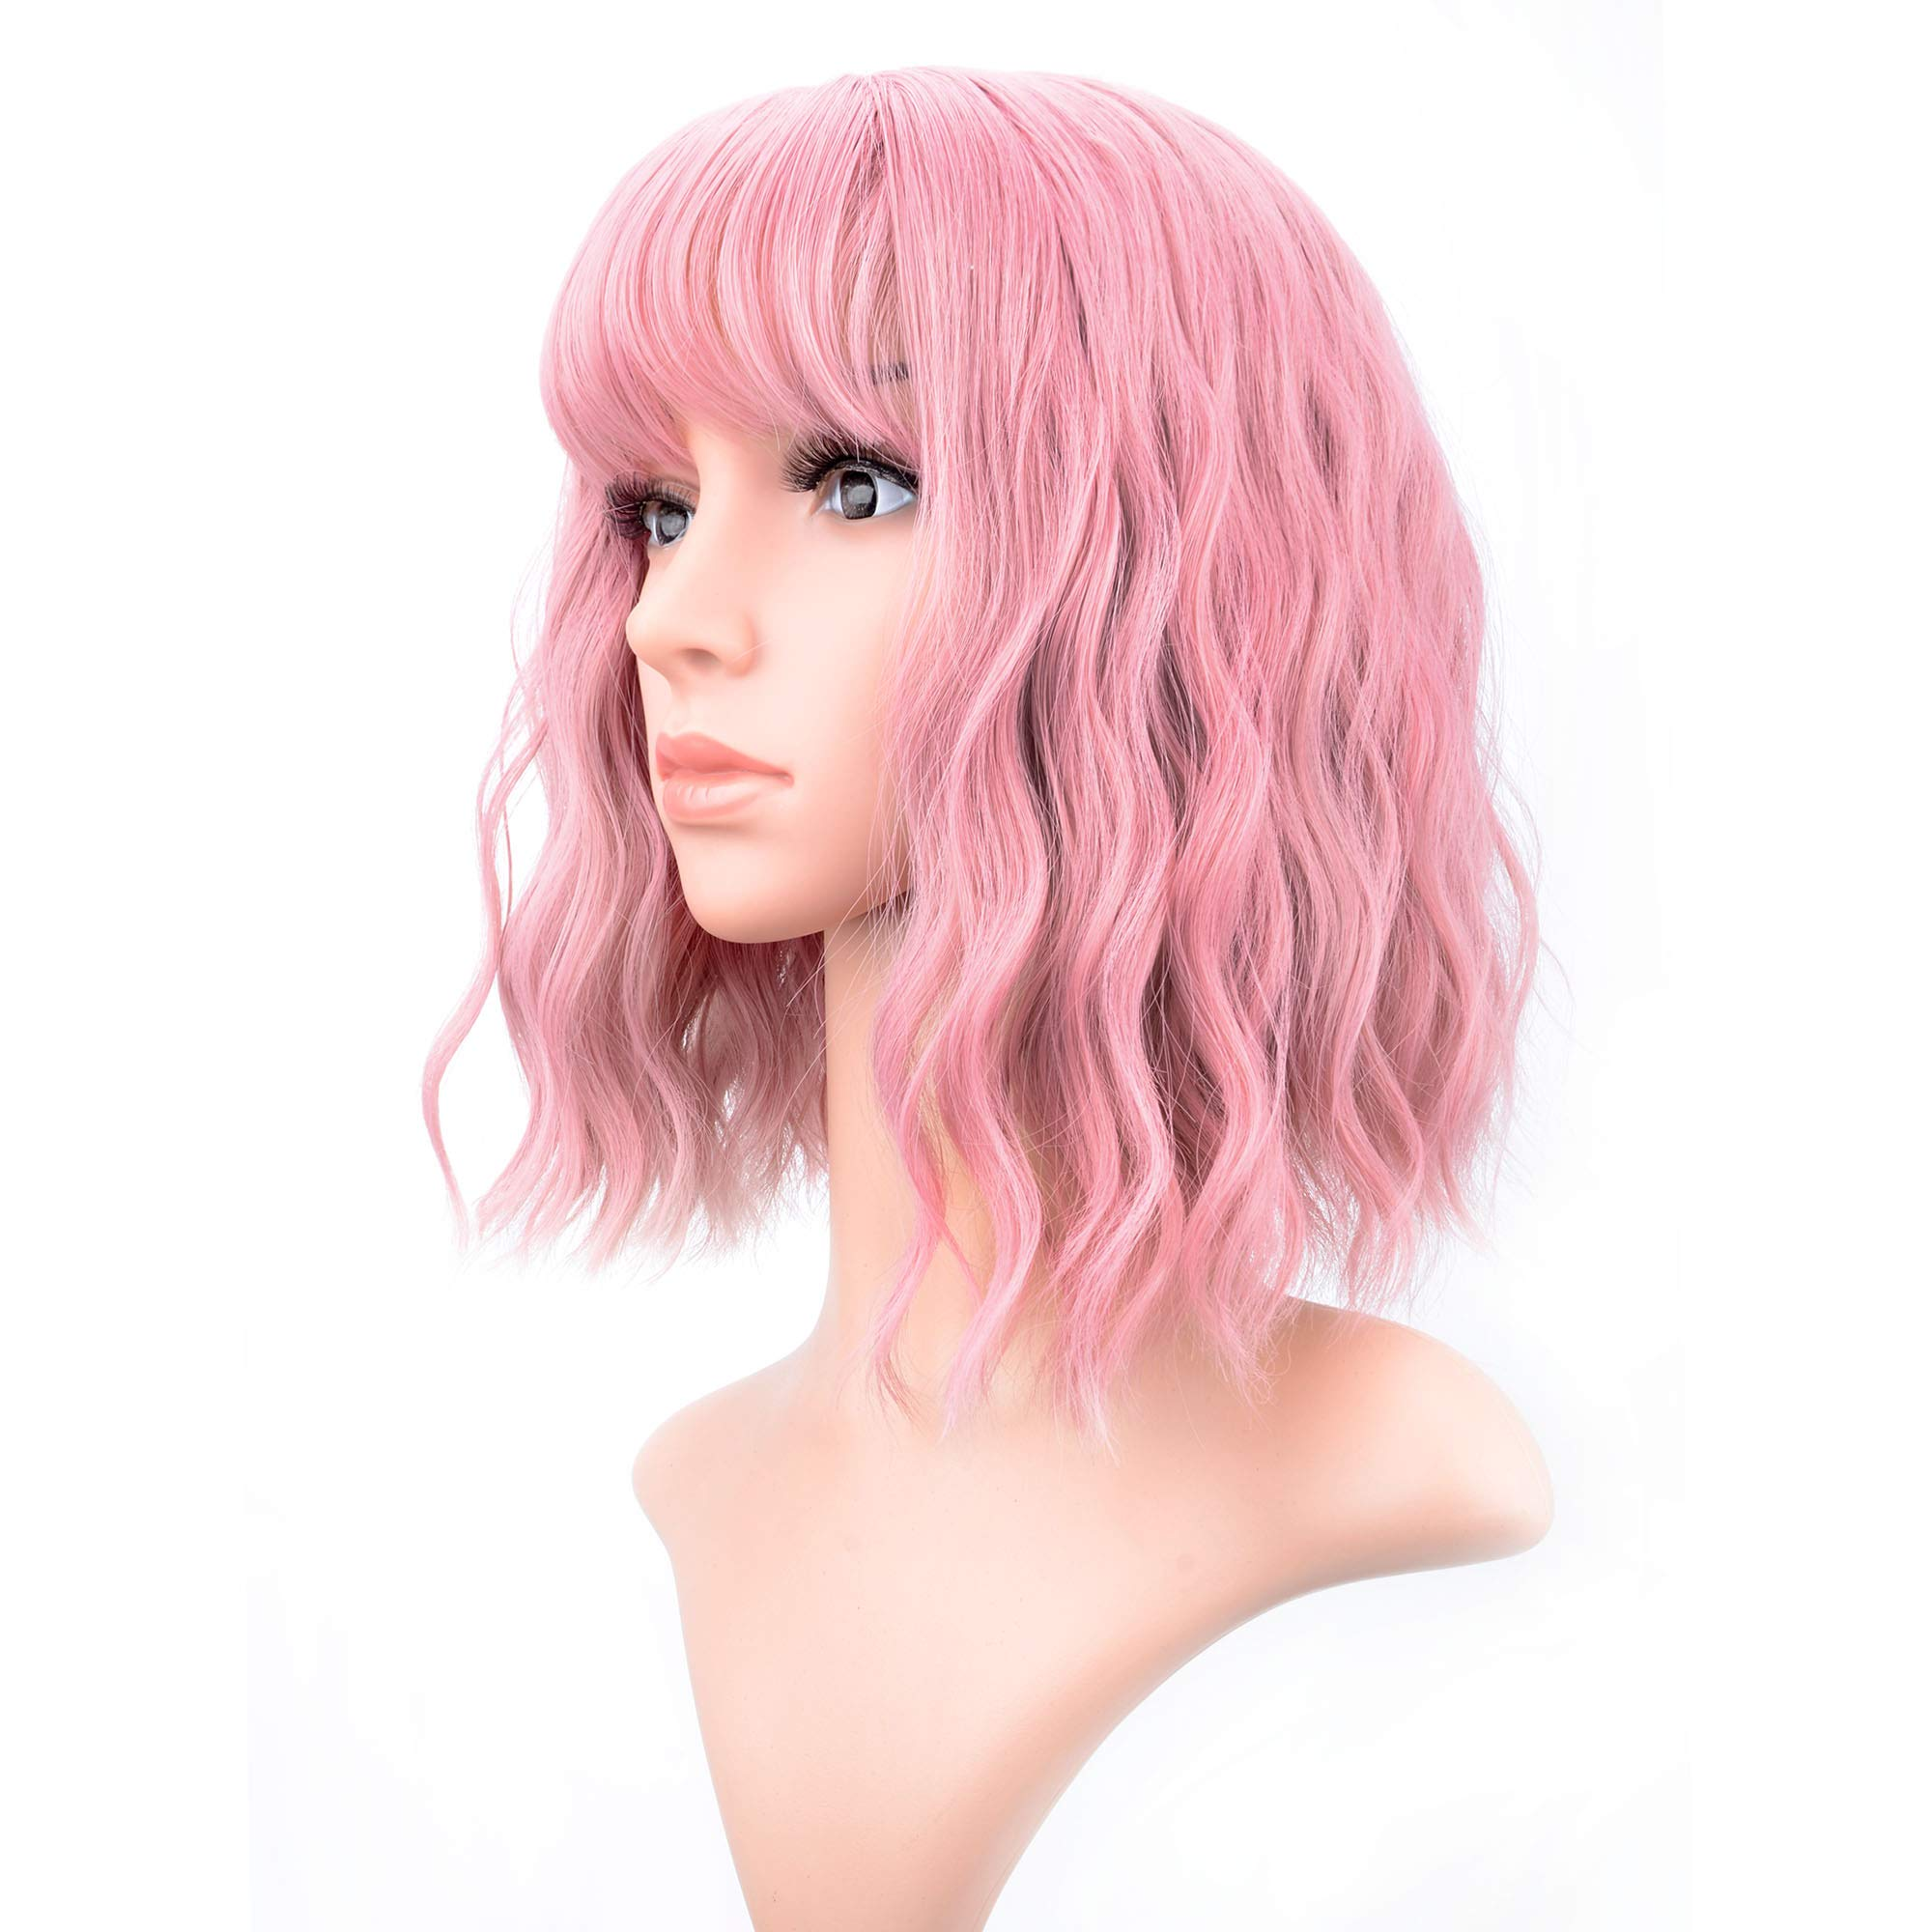 VCKOVCKO Pastel Wavy Wig With Air Bangs Women's Short Bob Pink Wig Curly Wavy Shoulder Length Pastel Bob Synthetic Cosplay Wig for Girl Colorful Costume Wigs(12'', Pink) by VCKOVCKO